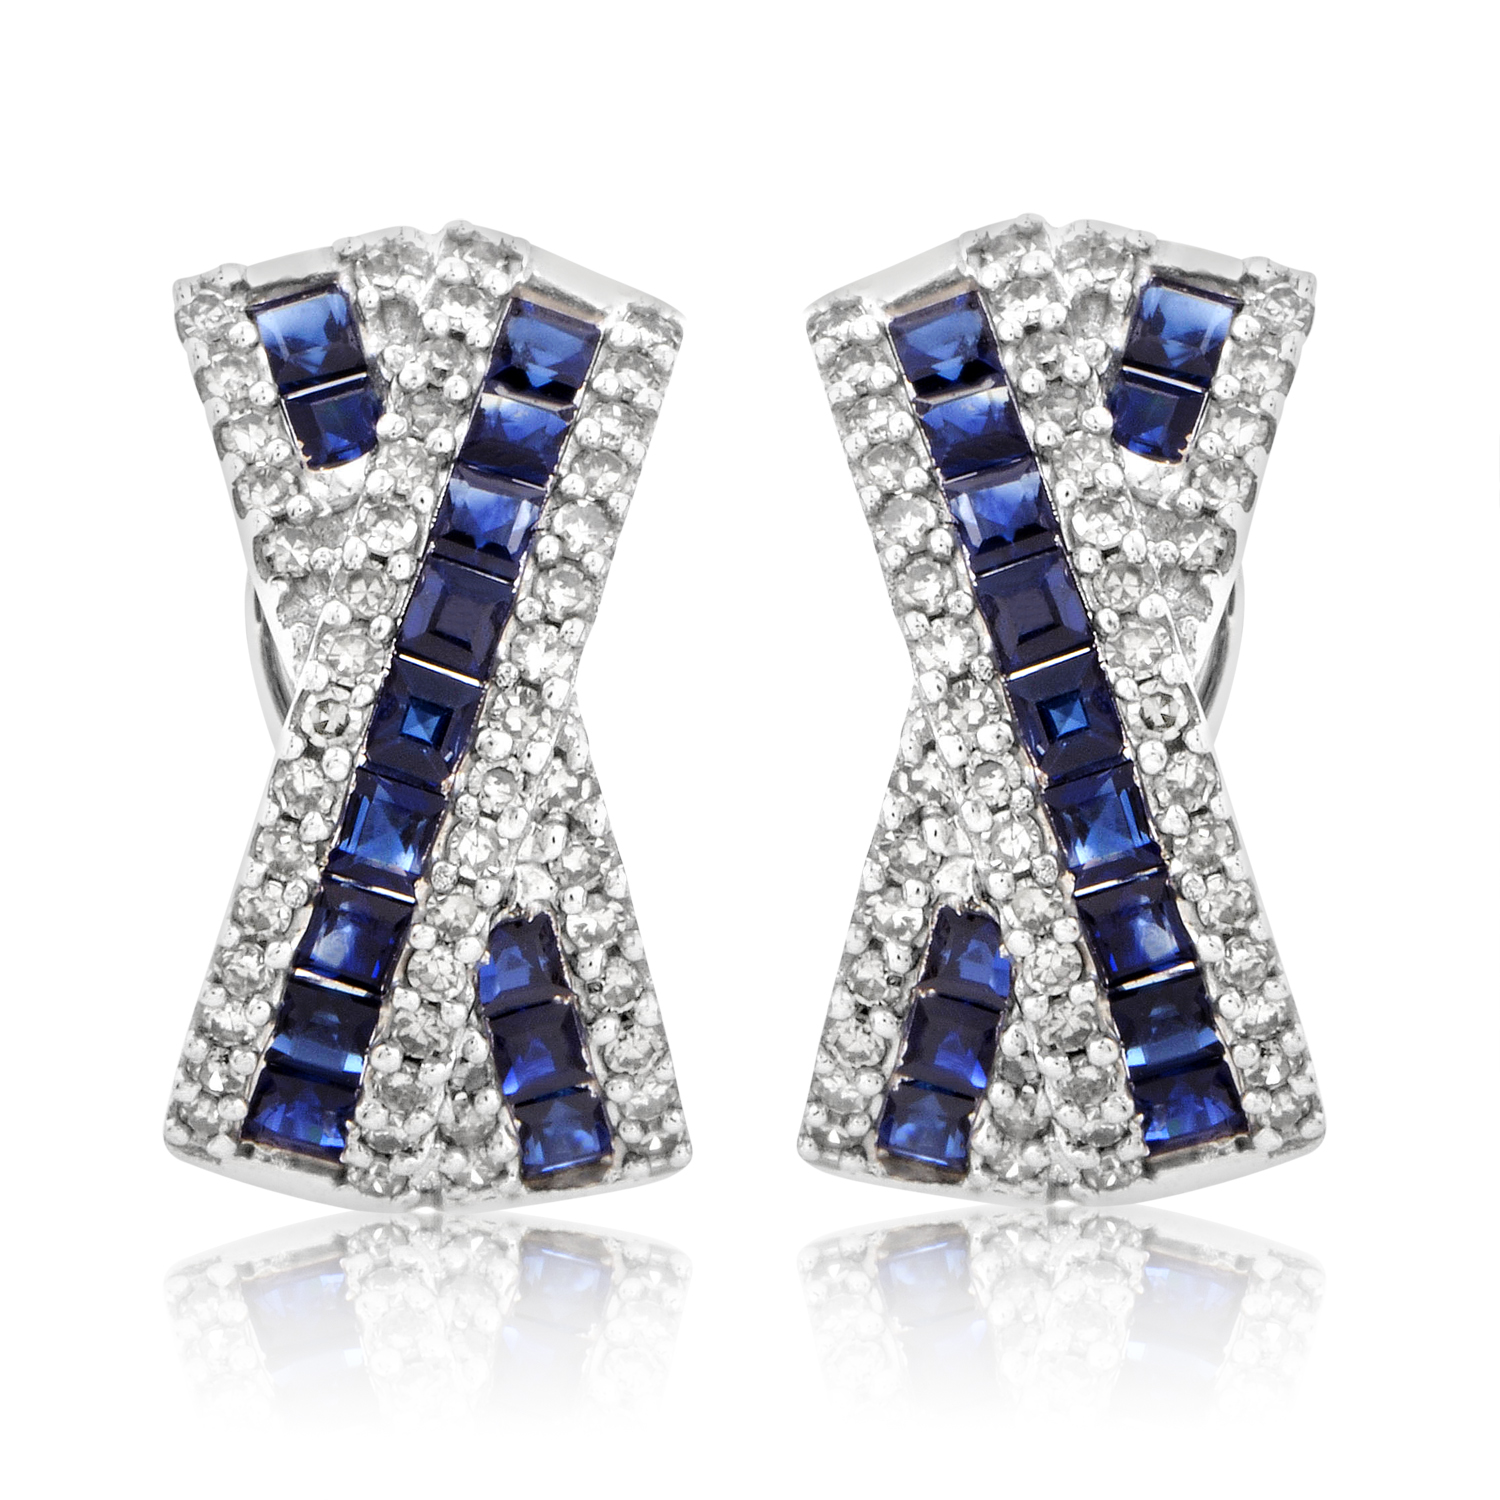 14K White Gold Diamond & Sapphire Huggie Earrings ER4-05676WSA